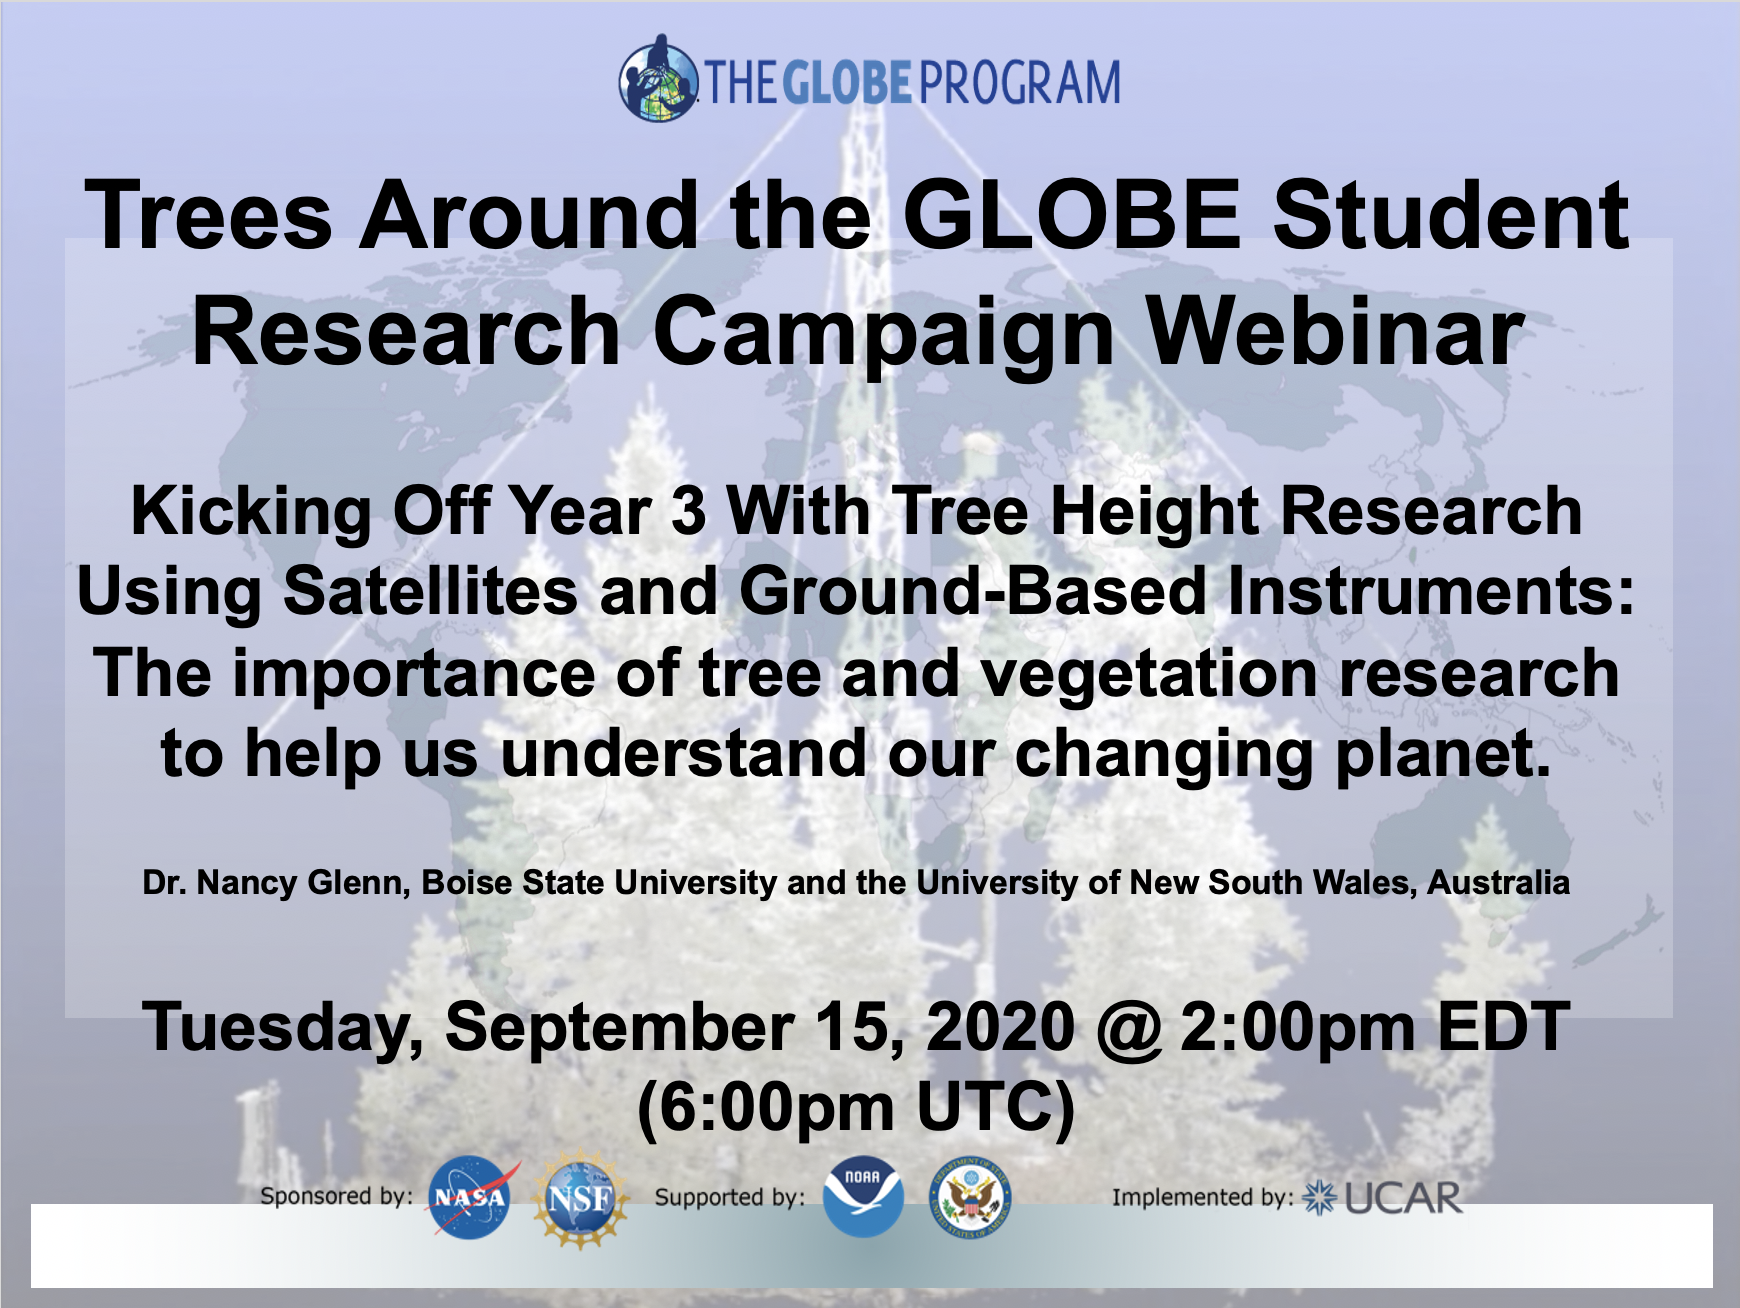 Trees Around the GLOBE Student Research Campaign Webinar Shareable